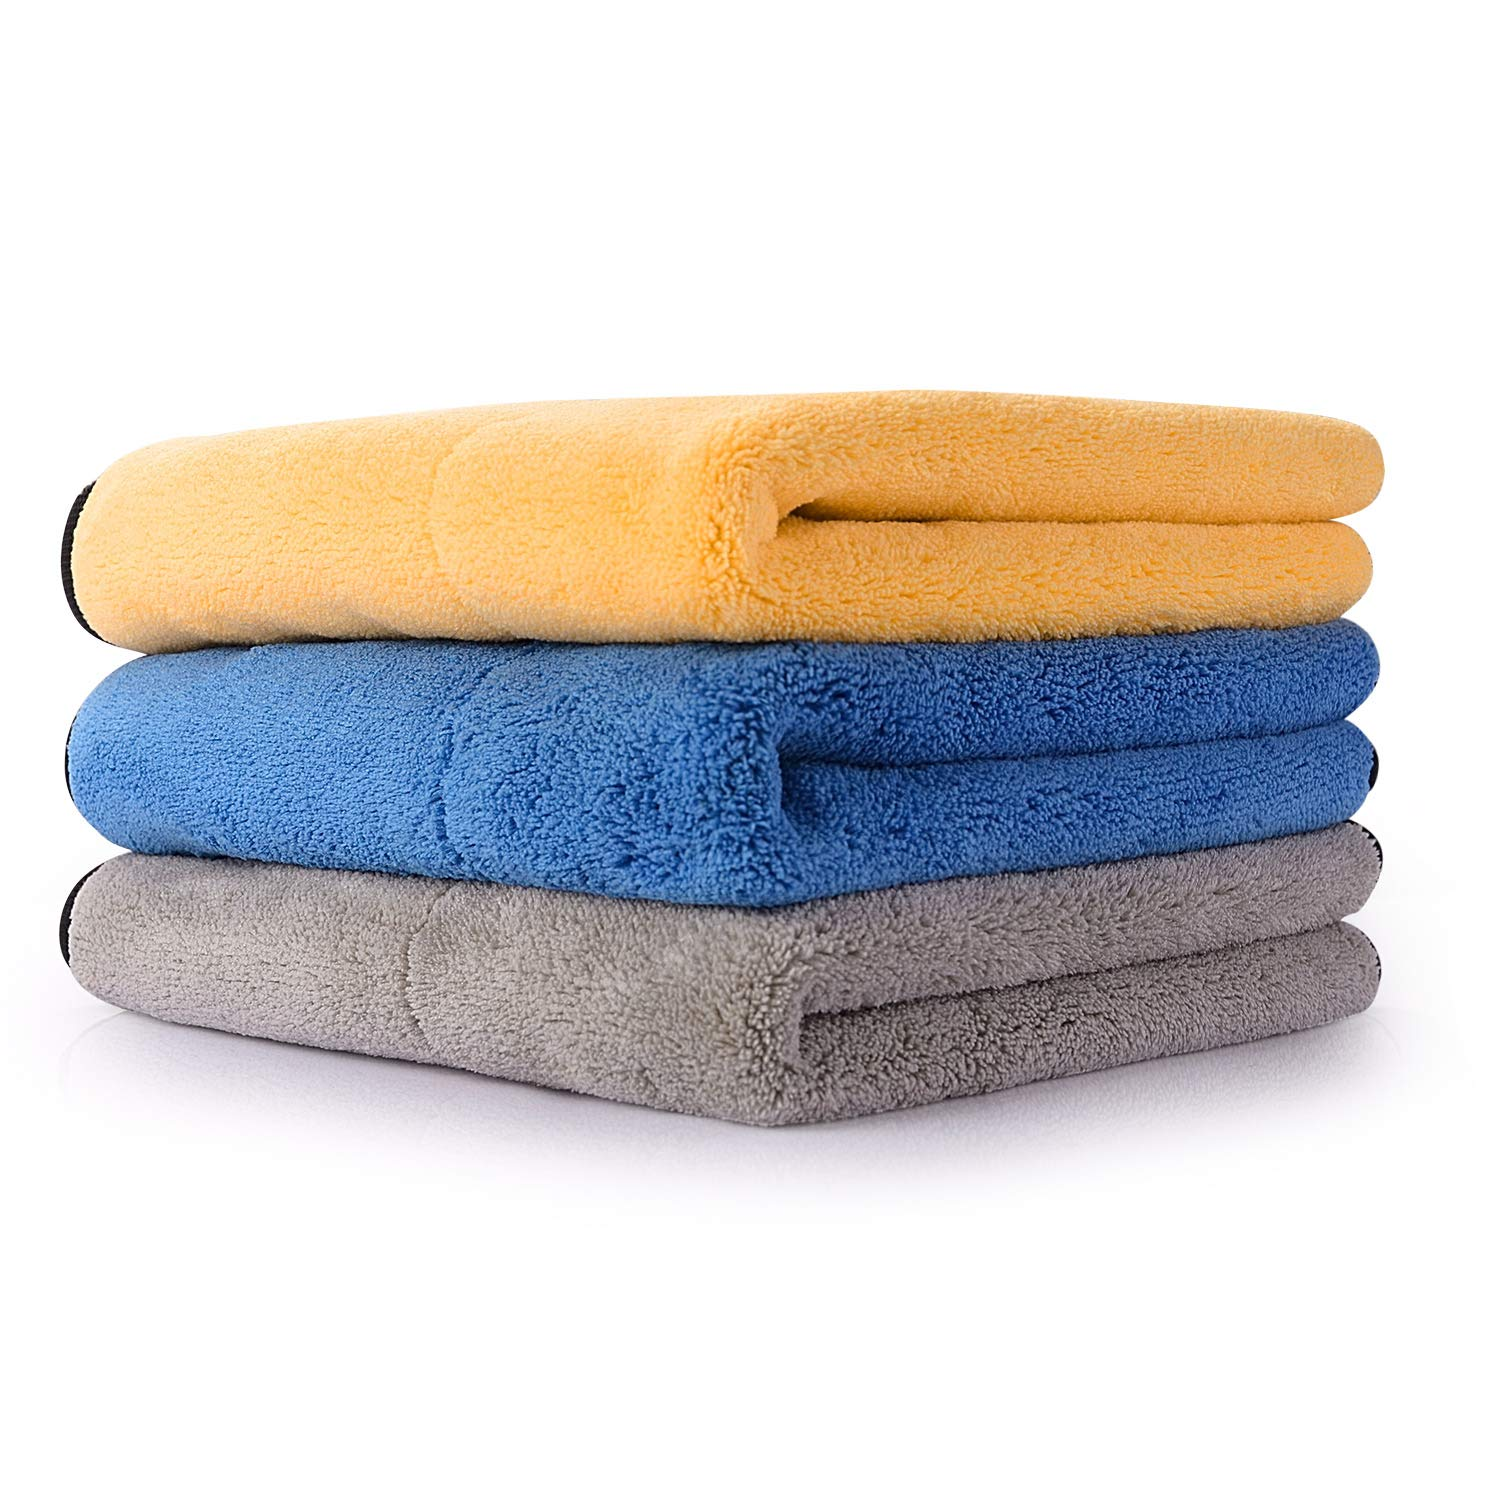 Lint Free Dual Layer Microfiber Cleaning Cloths 14.5x14.5 HOUSE AGAIN Ultra-Thick Car Microfiber Cleaning Towels Silk Edging Car Wash Waxing Polishing and Drying Towels 3 Pack Super Absorbent